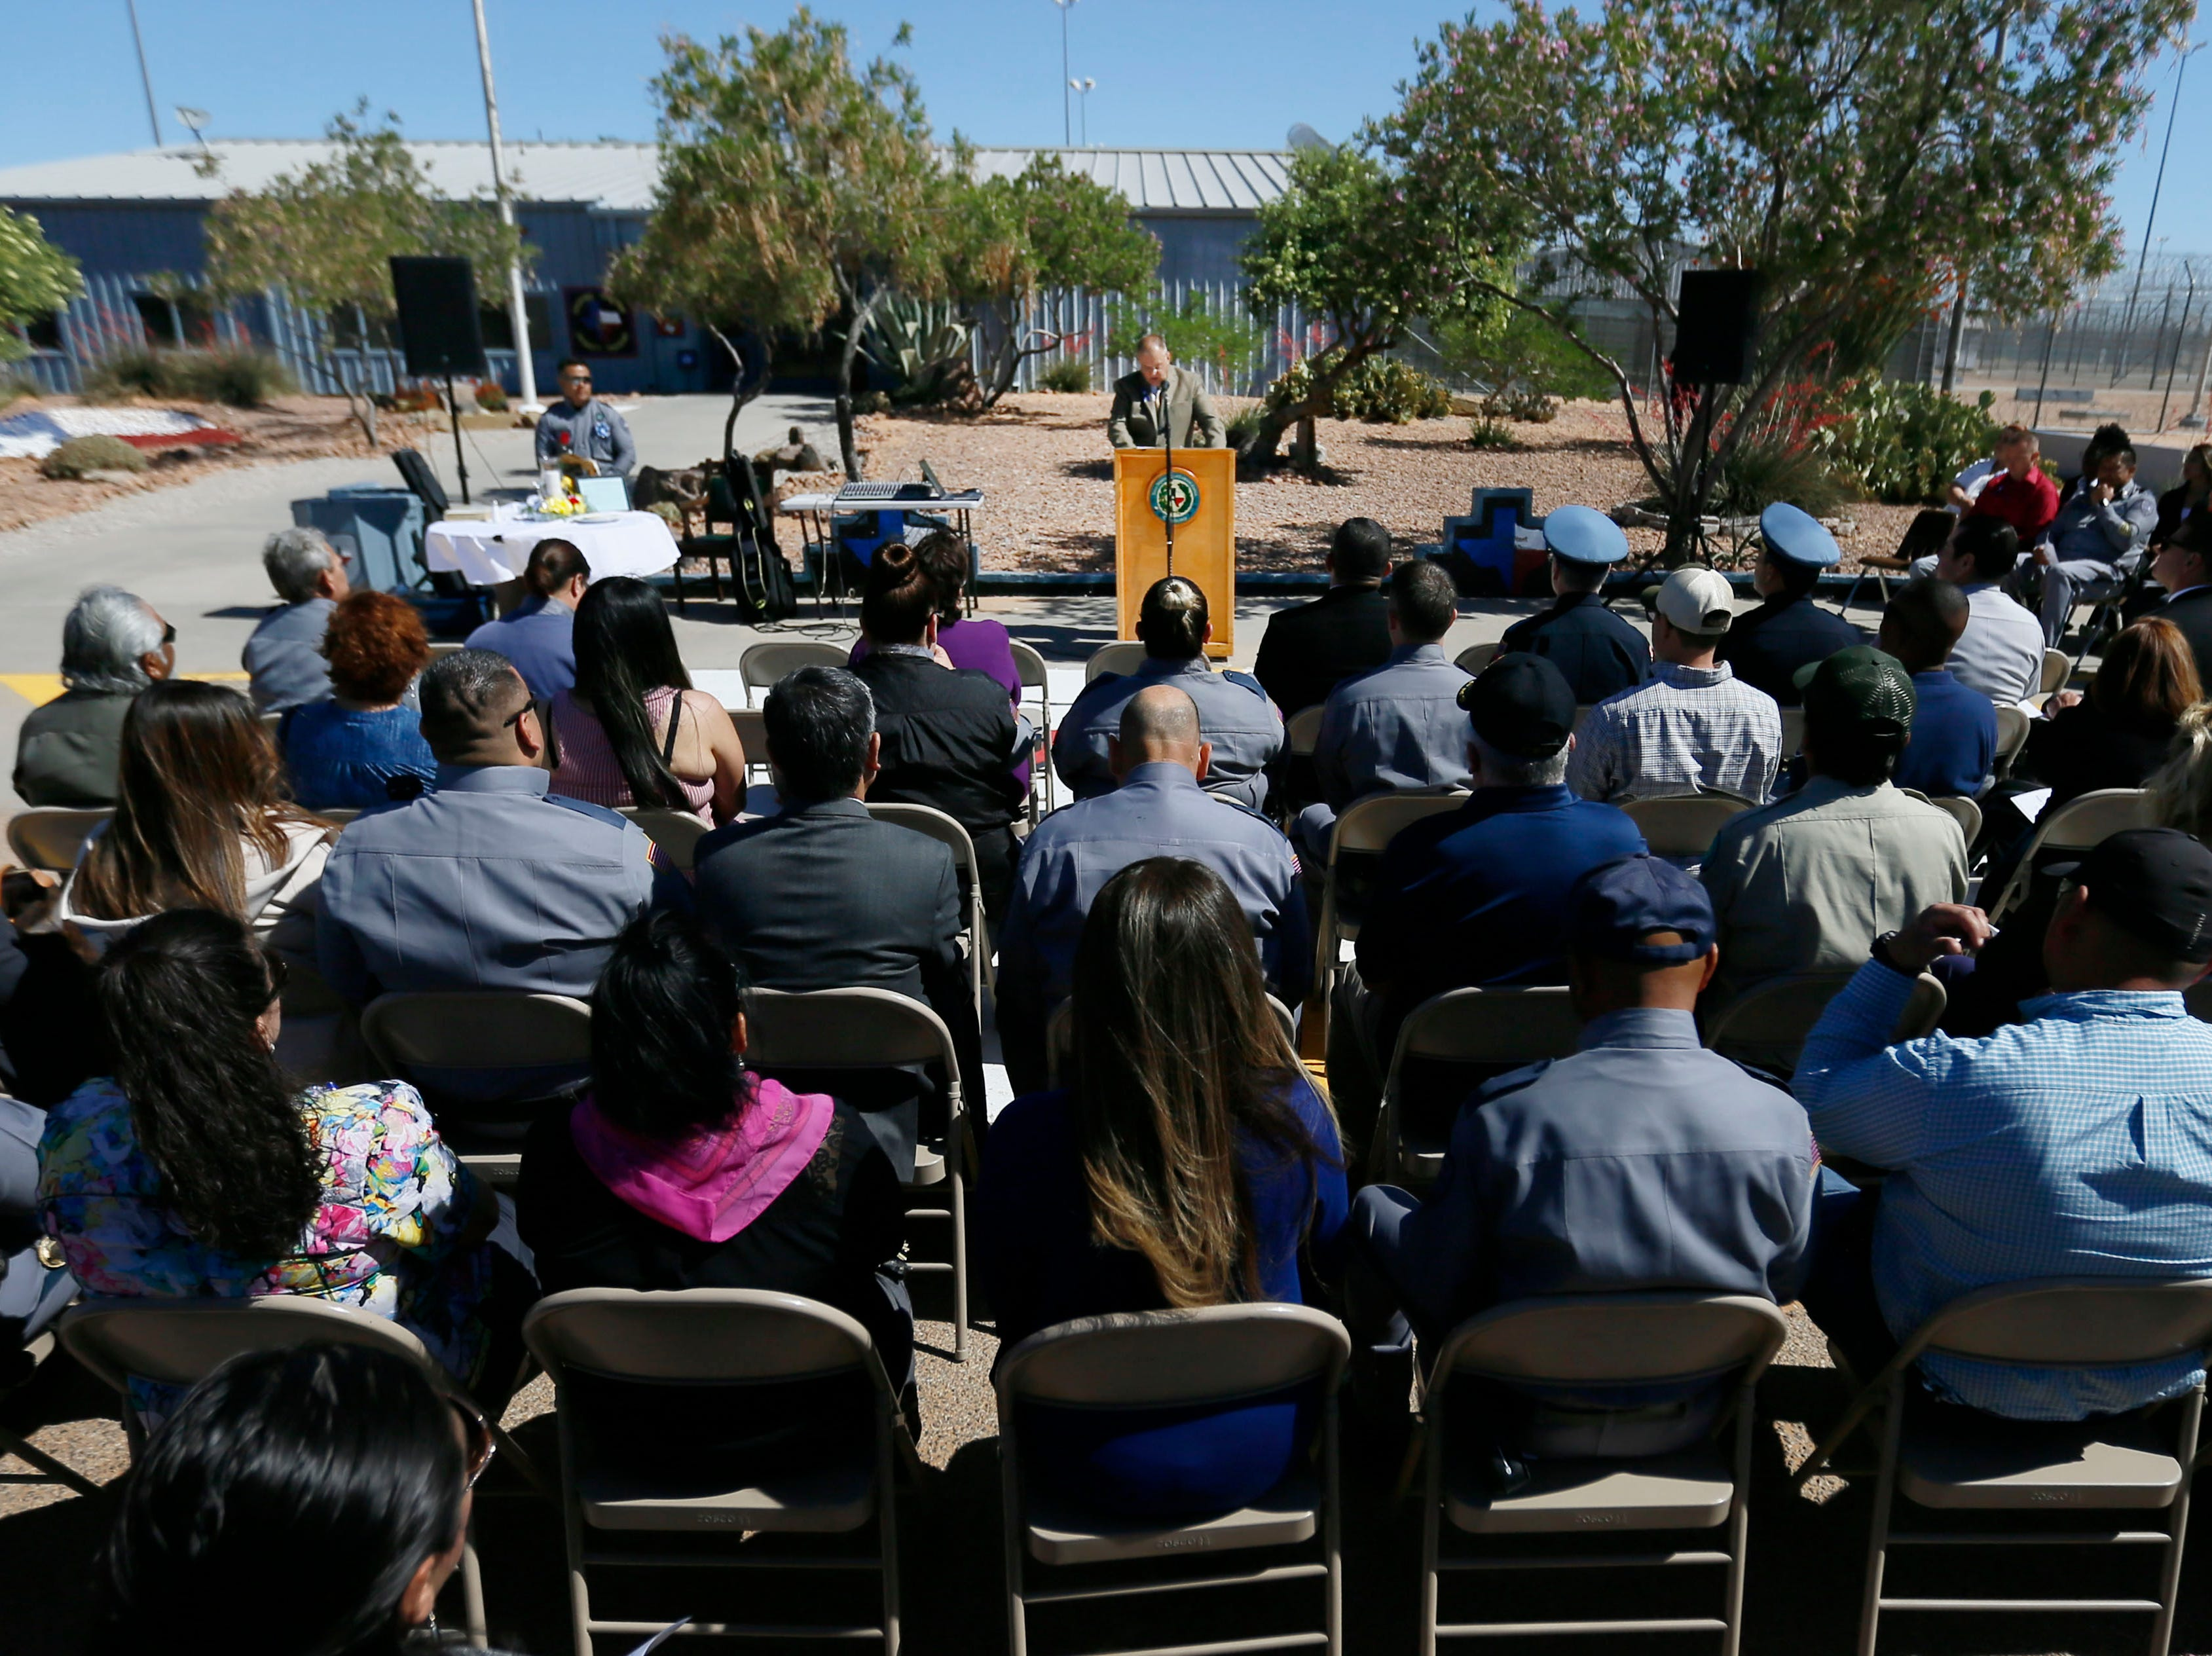 Senior Warden Keith Gorsuch speaks during the gathering to honor the memory of fallen correctional officers Wednesday, May 8, at Rogelio Sanchez State Jail in El Paso.